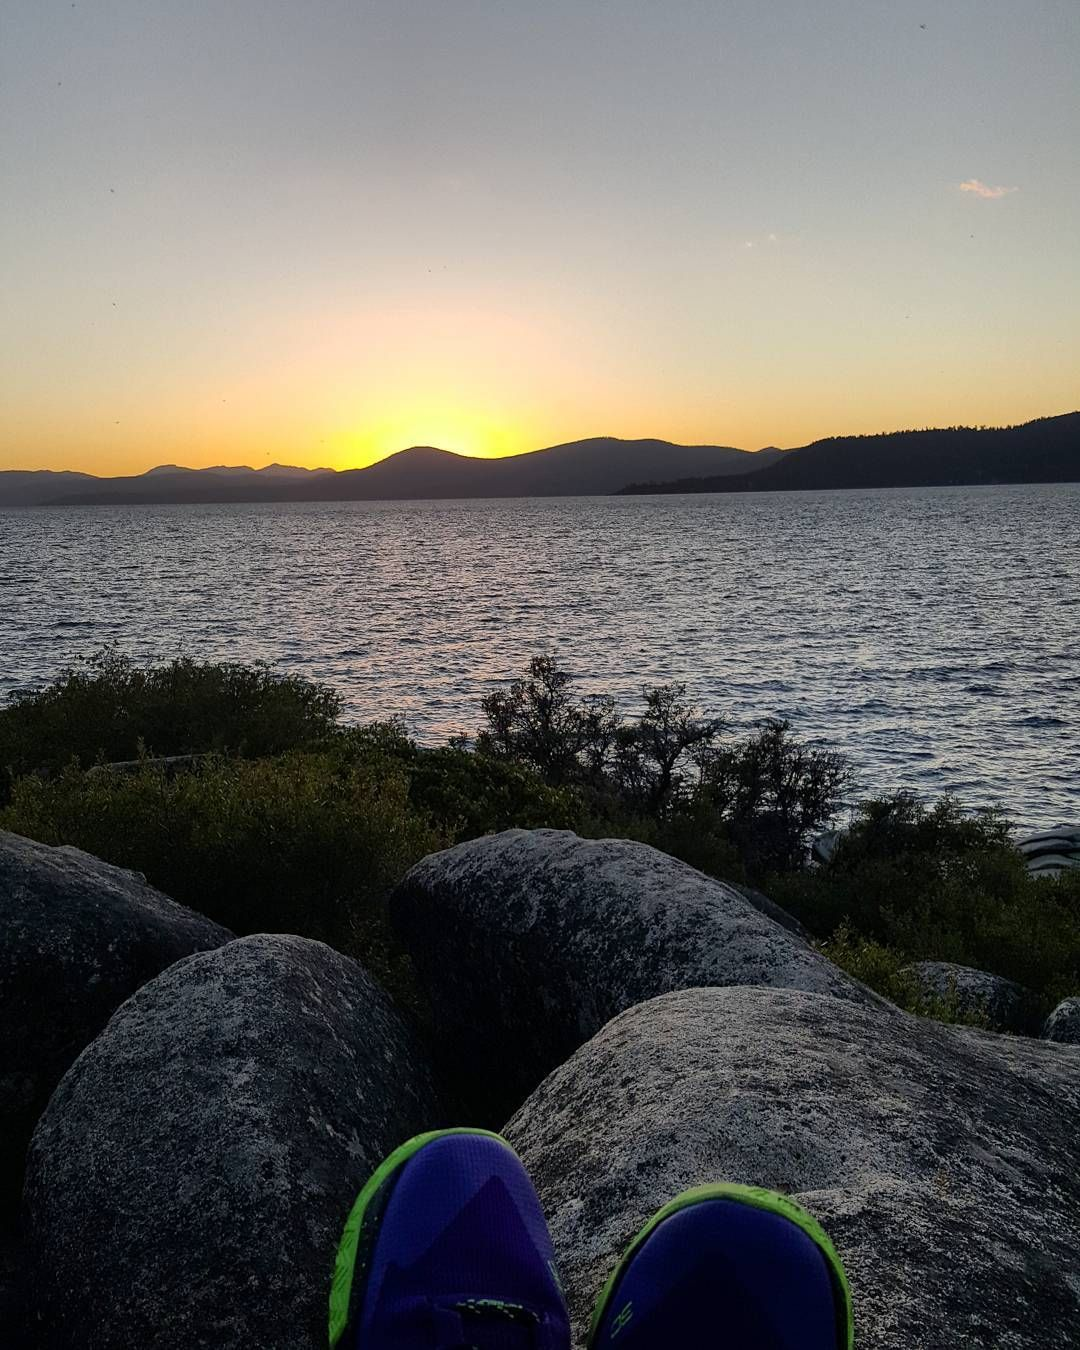 Sunset watching on Lake Tahoe. Hope you guys had a great Wednesday!  #suckitupfitness #sunset #laketahoe